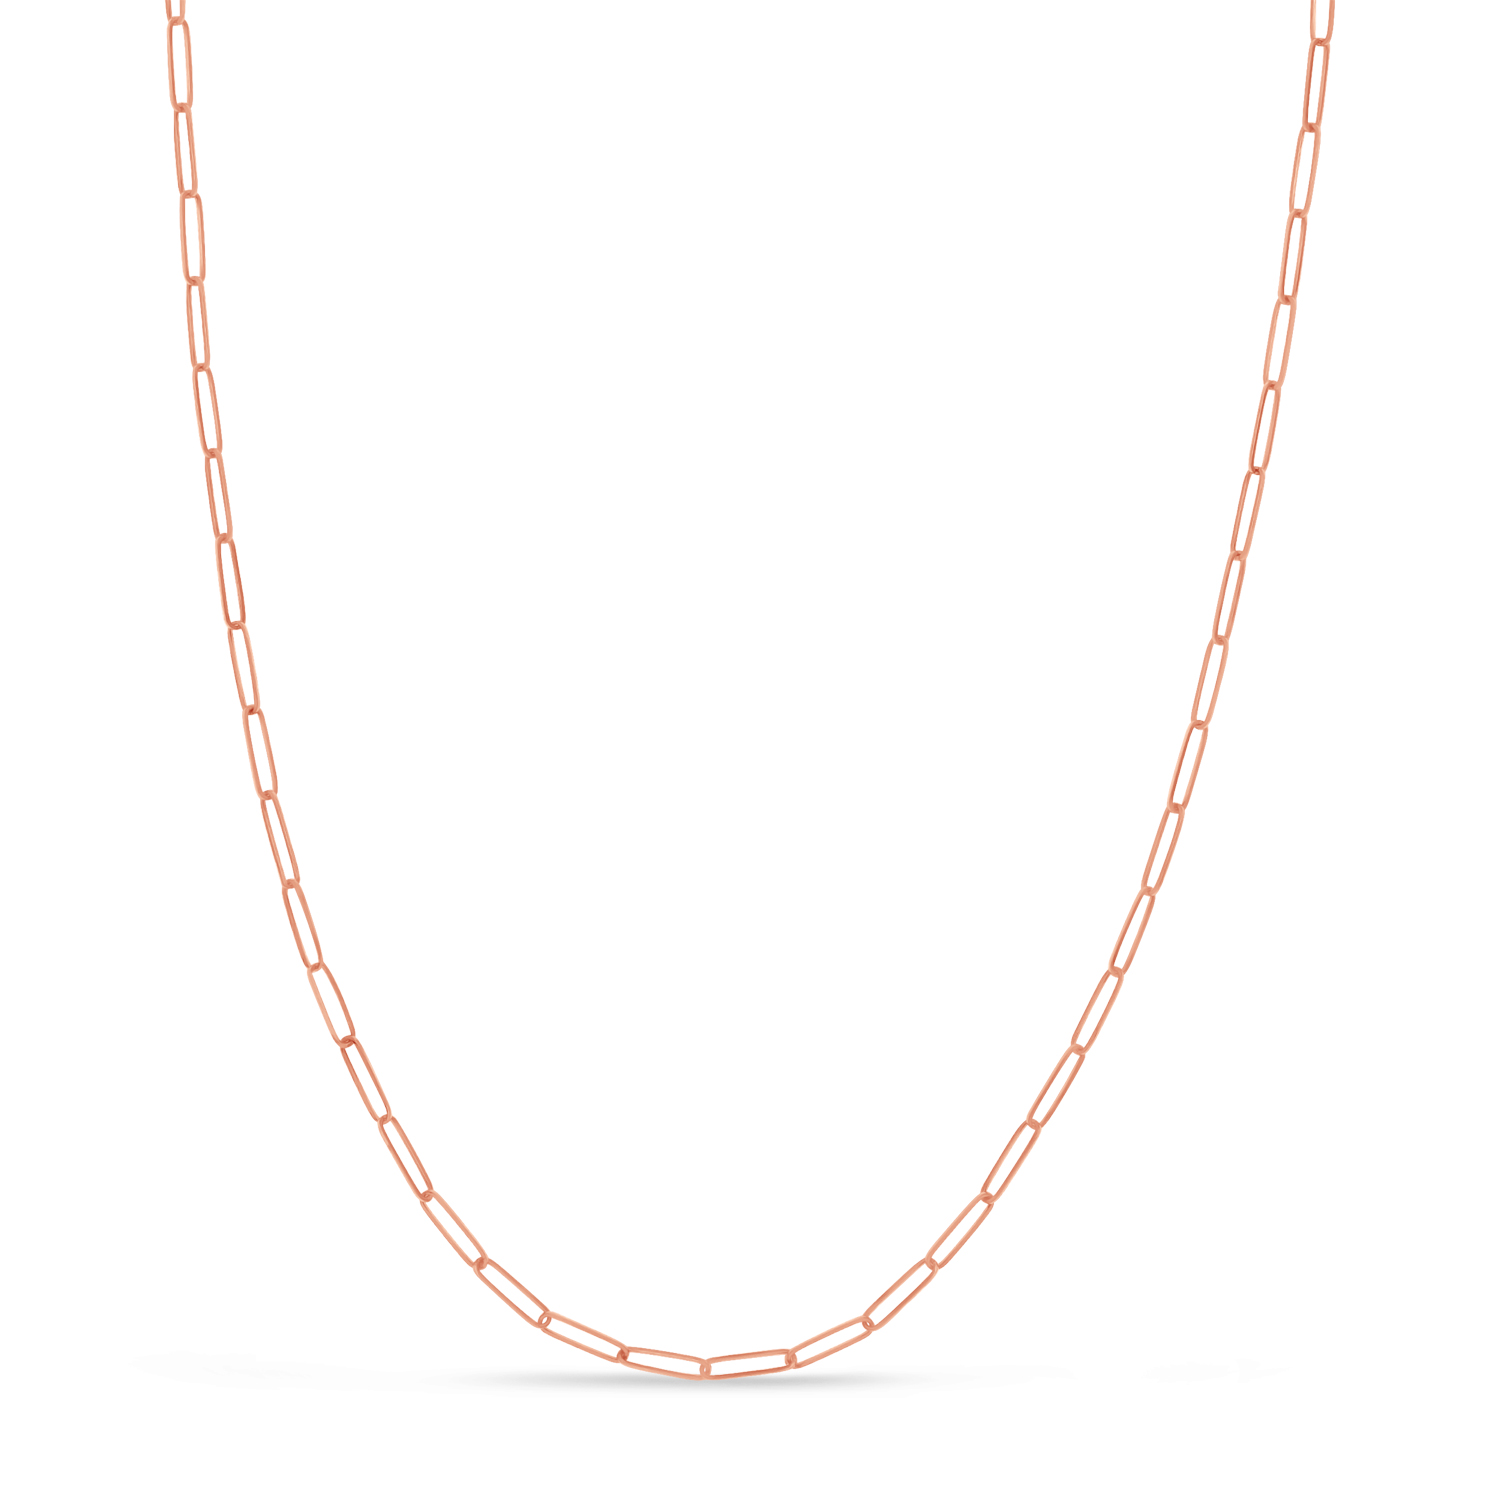 Handmade Elongated Paperclip Link Chain Necklace 14k Rose Gold